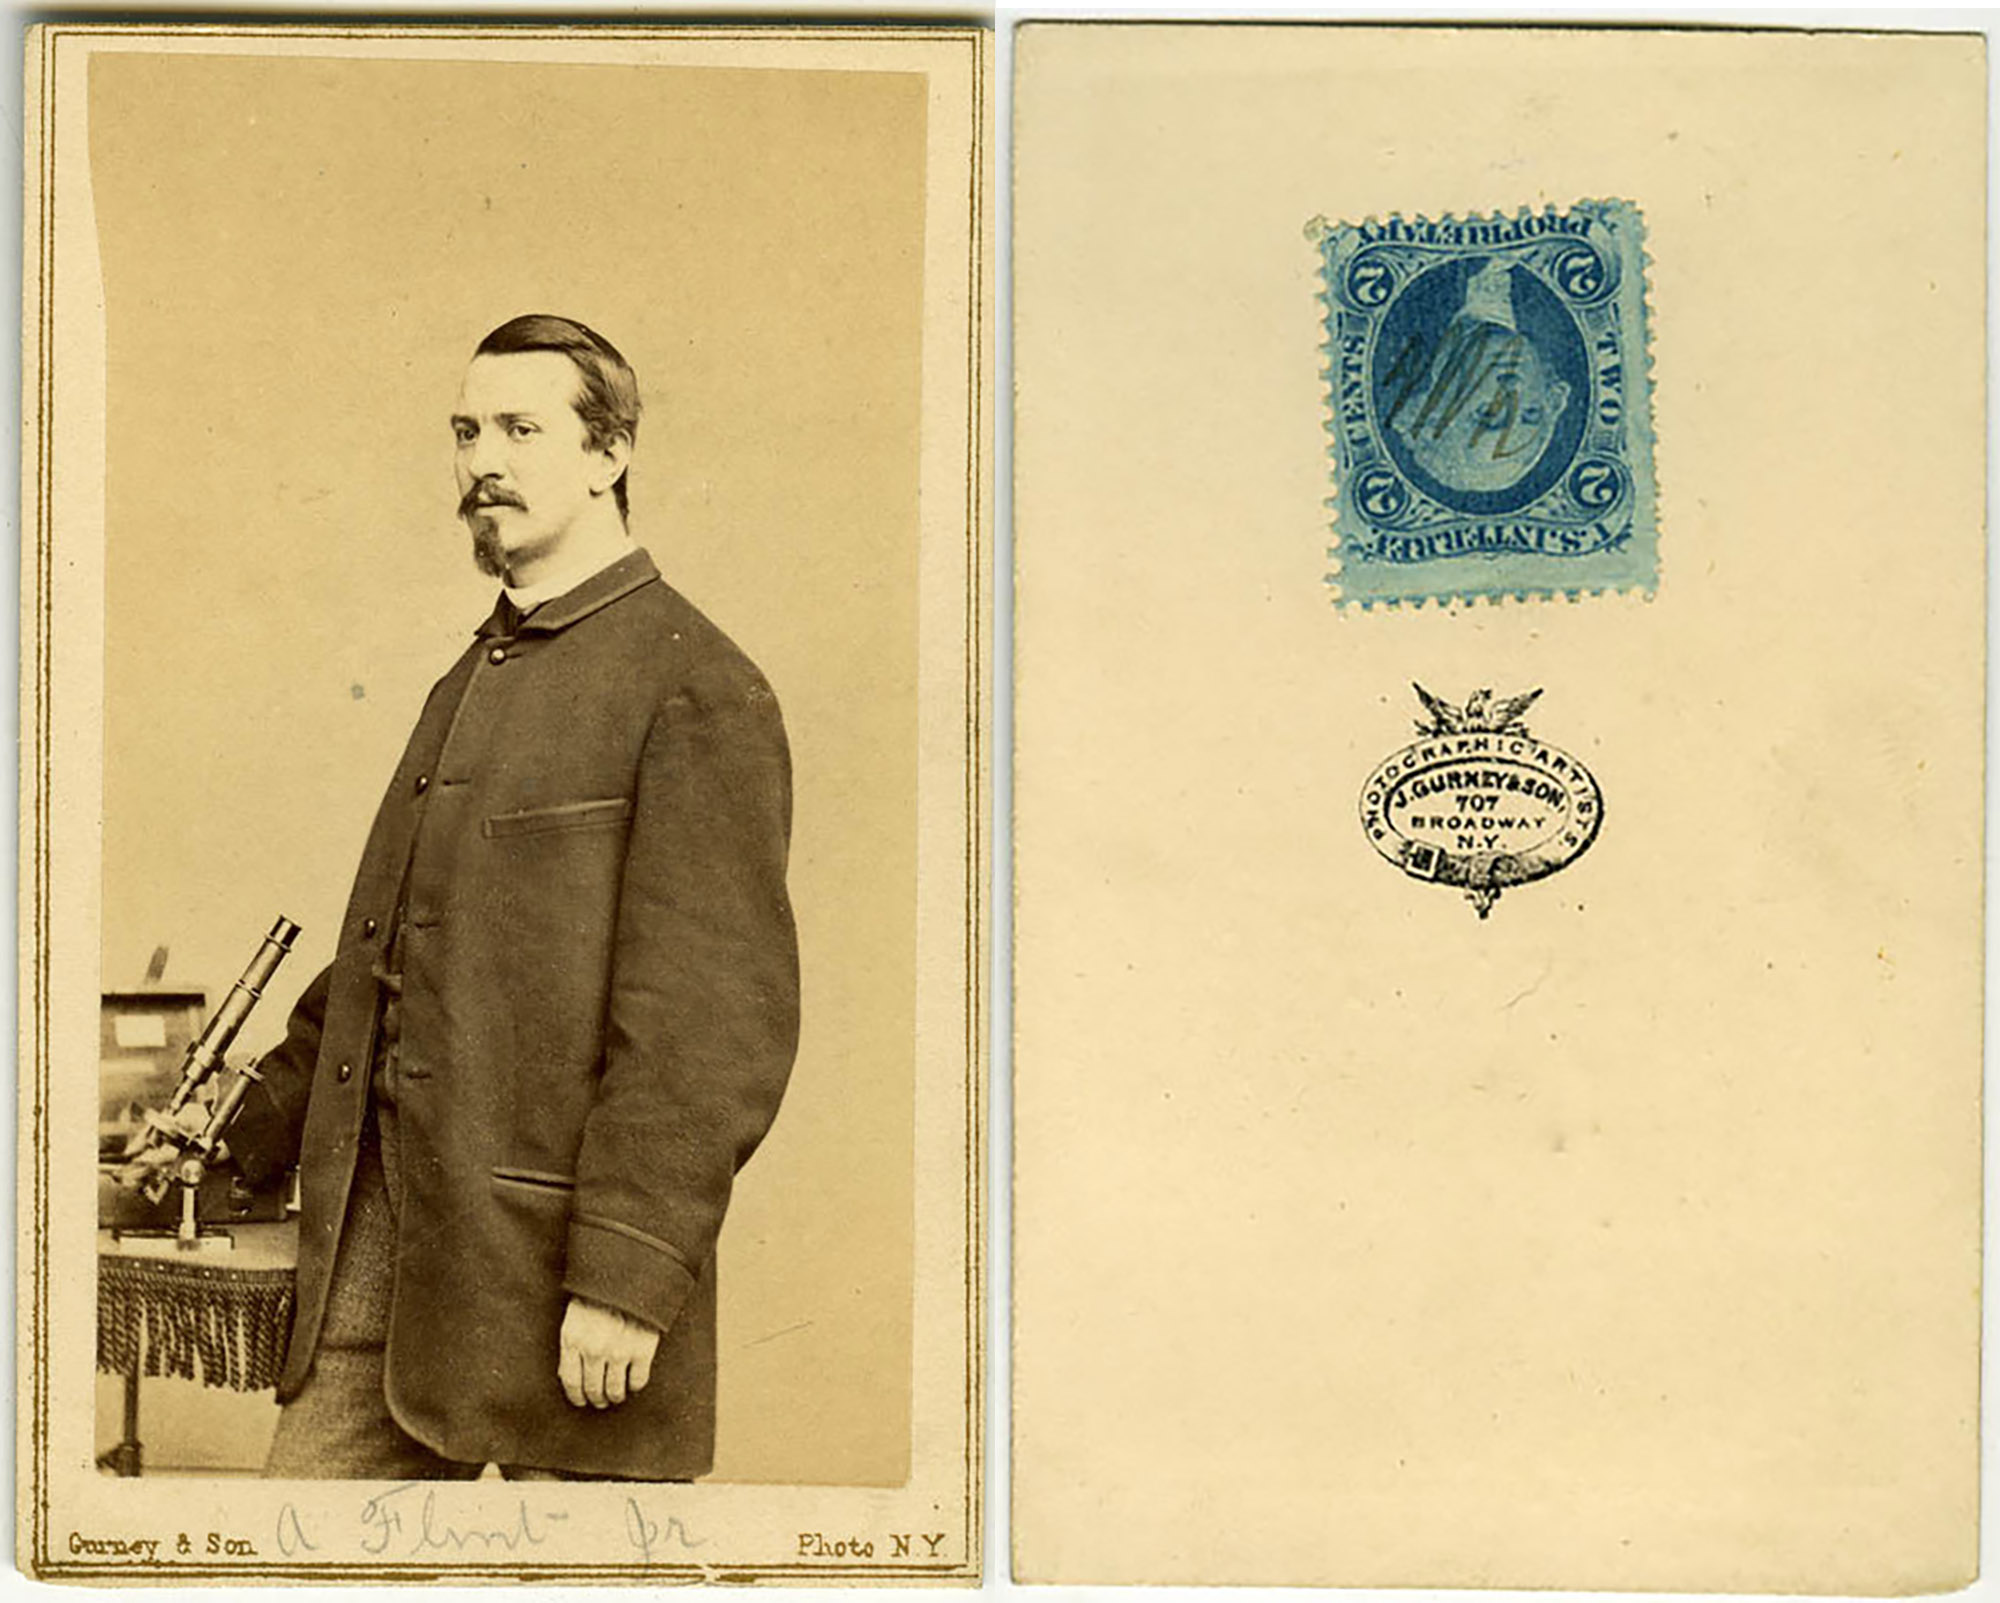 Mr A Flint Jr With His Microscope Carte De Visite Photograph By J Gurney And Son 707 Broadway New York